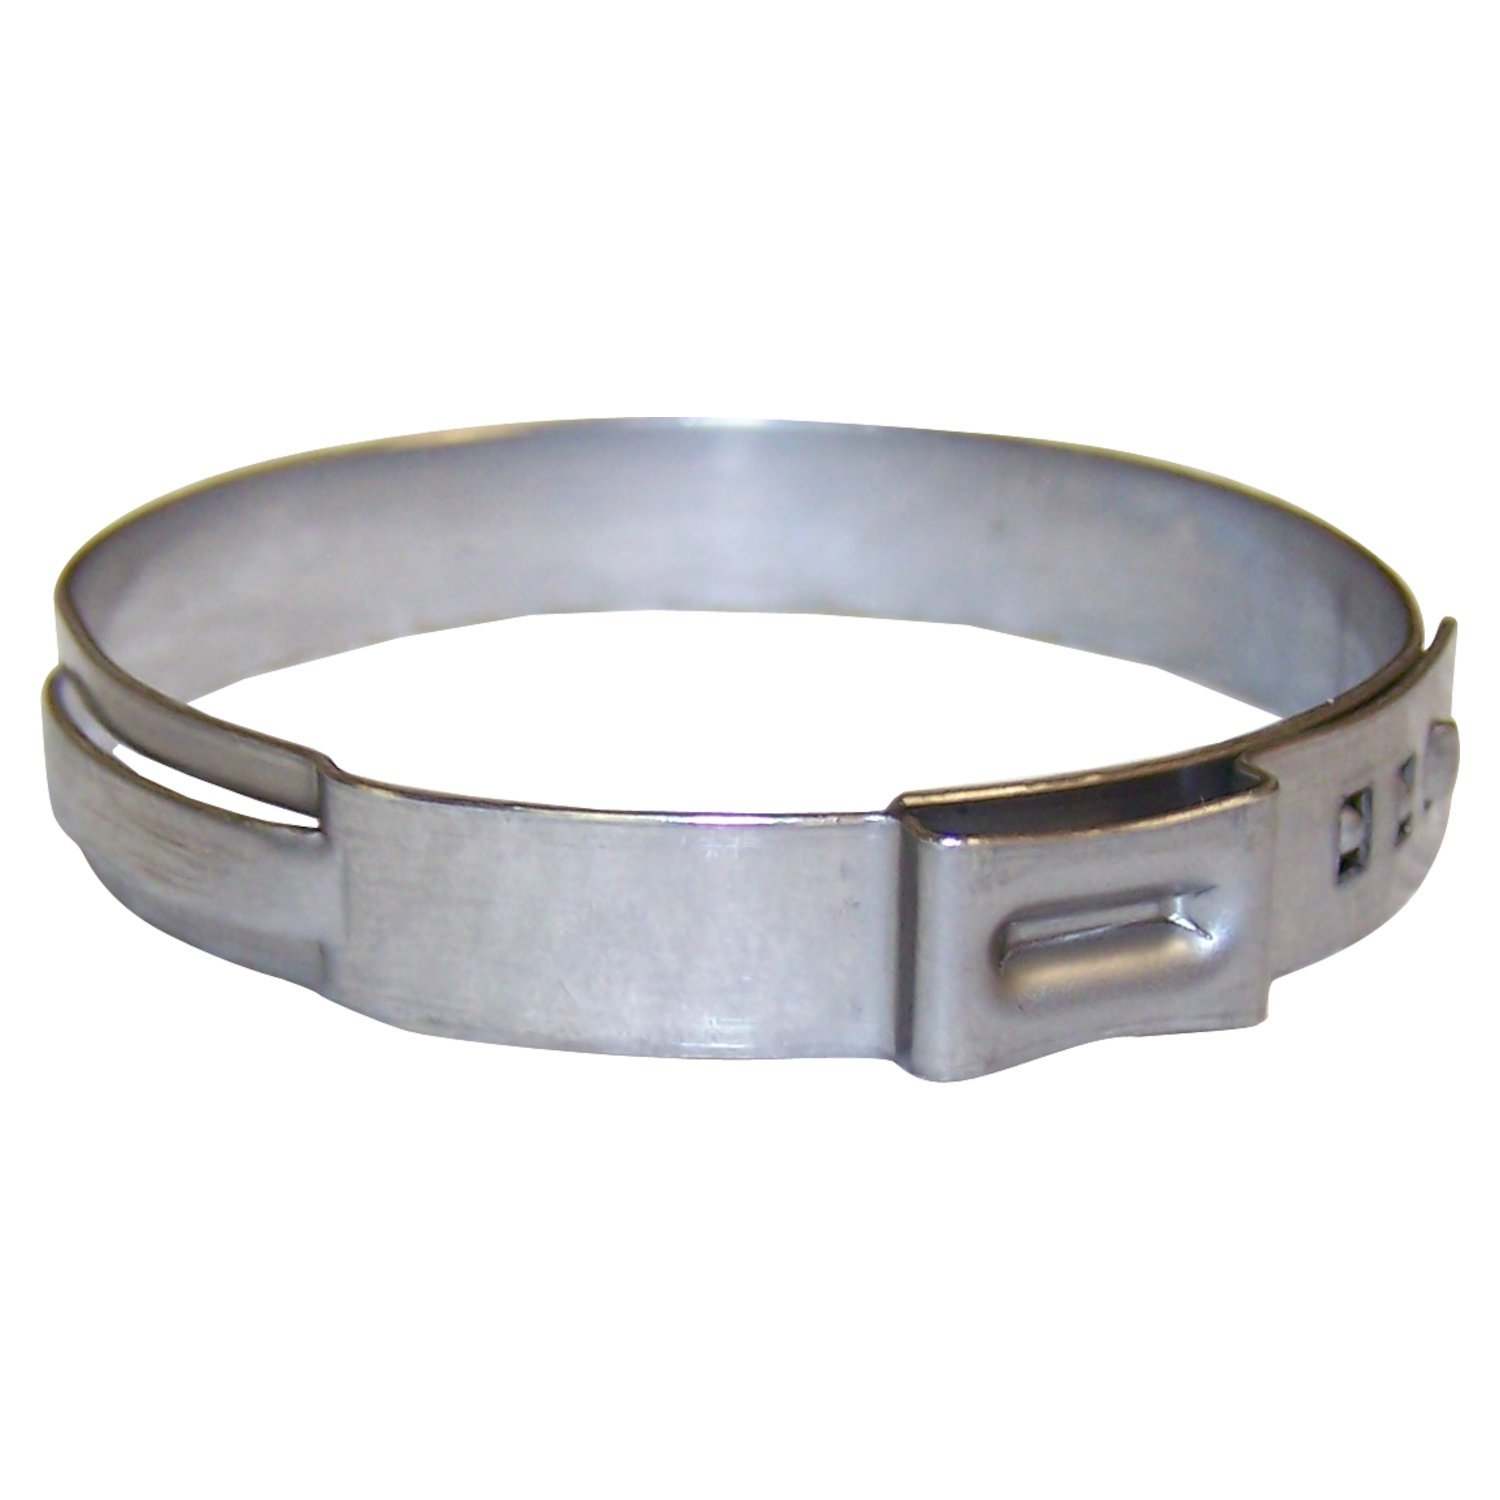 Drive Shaft Clamping Ring